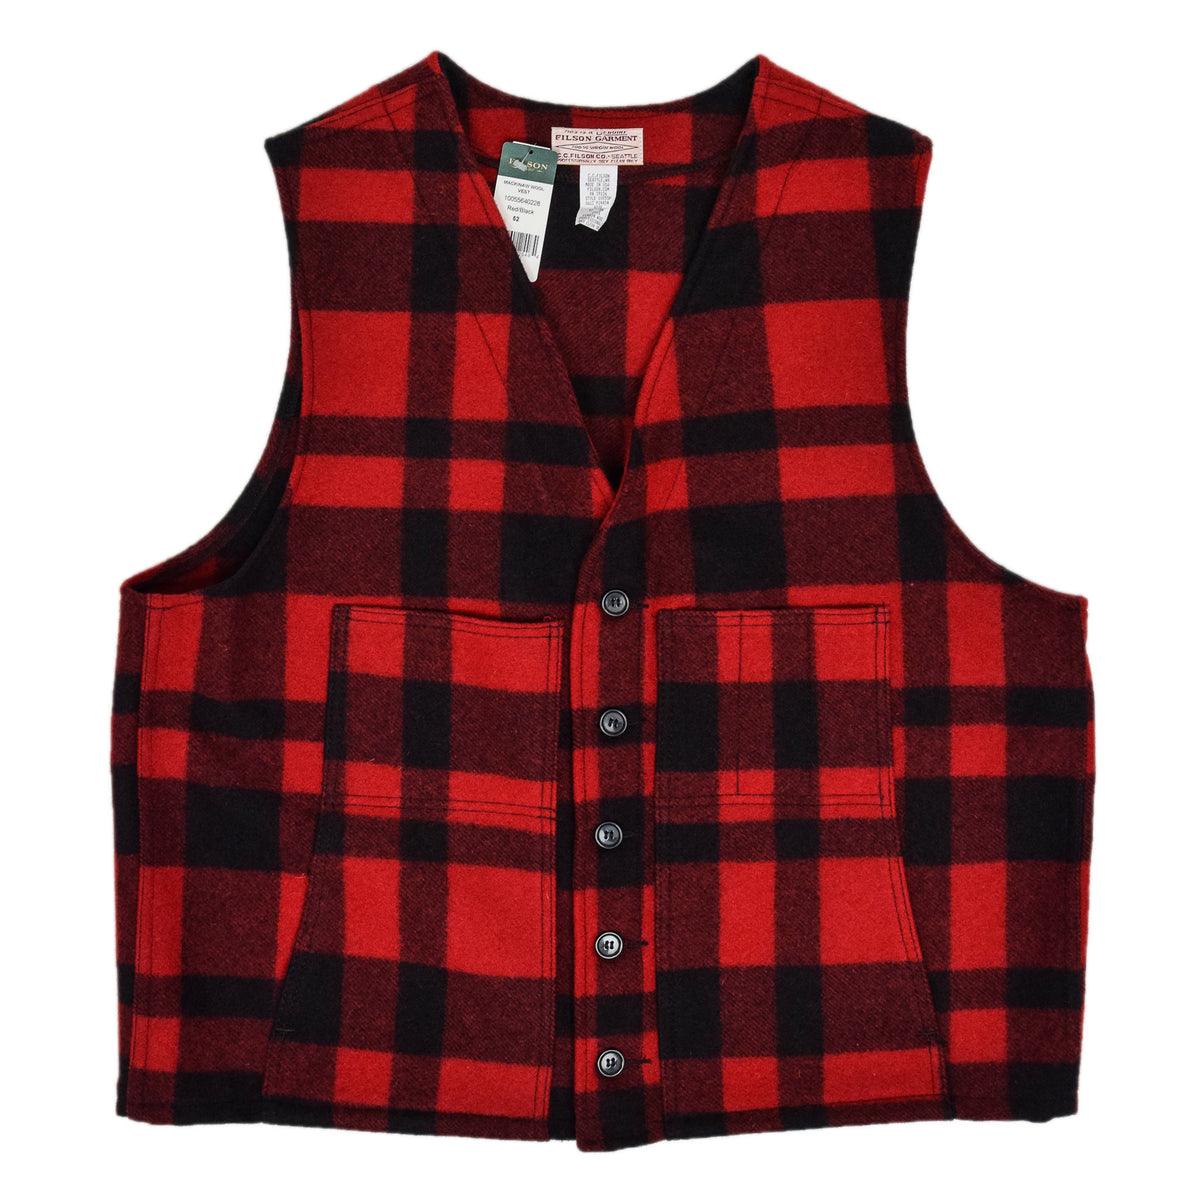 Filson Plaid Mackinaw Wool Hunting Cruiser Waistcoat Vest Made in USA XXL front